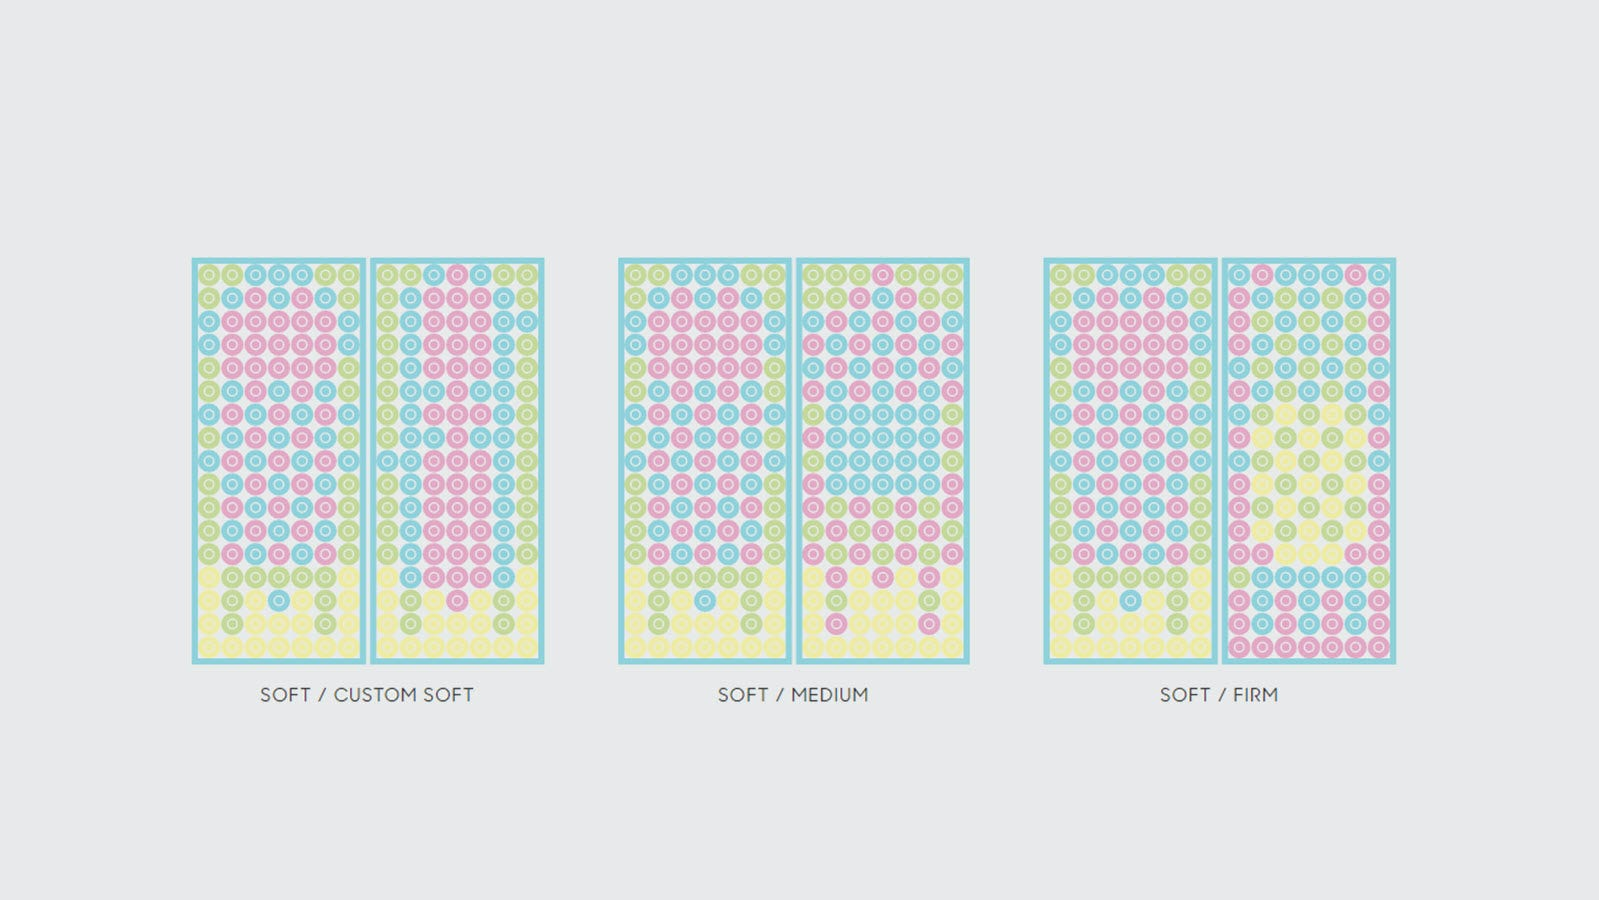 Three rectangles with various colored circles showing methods to configure the mattress.